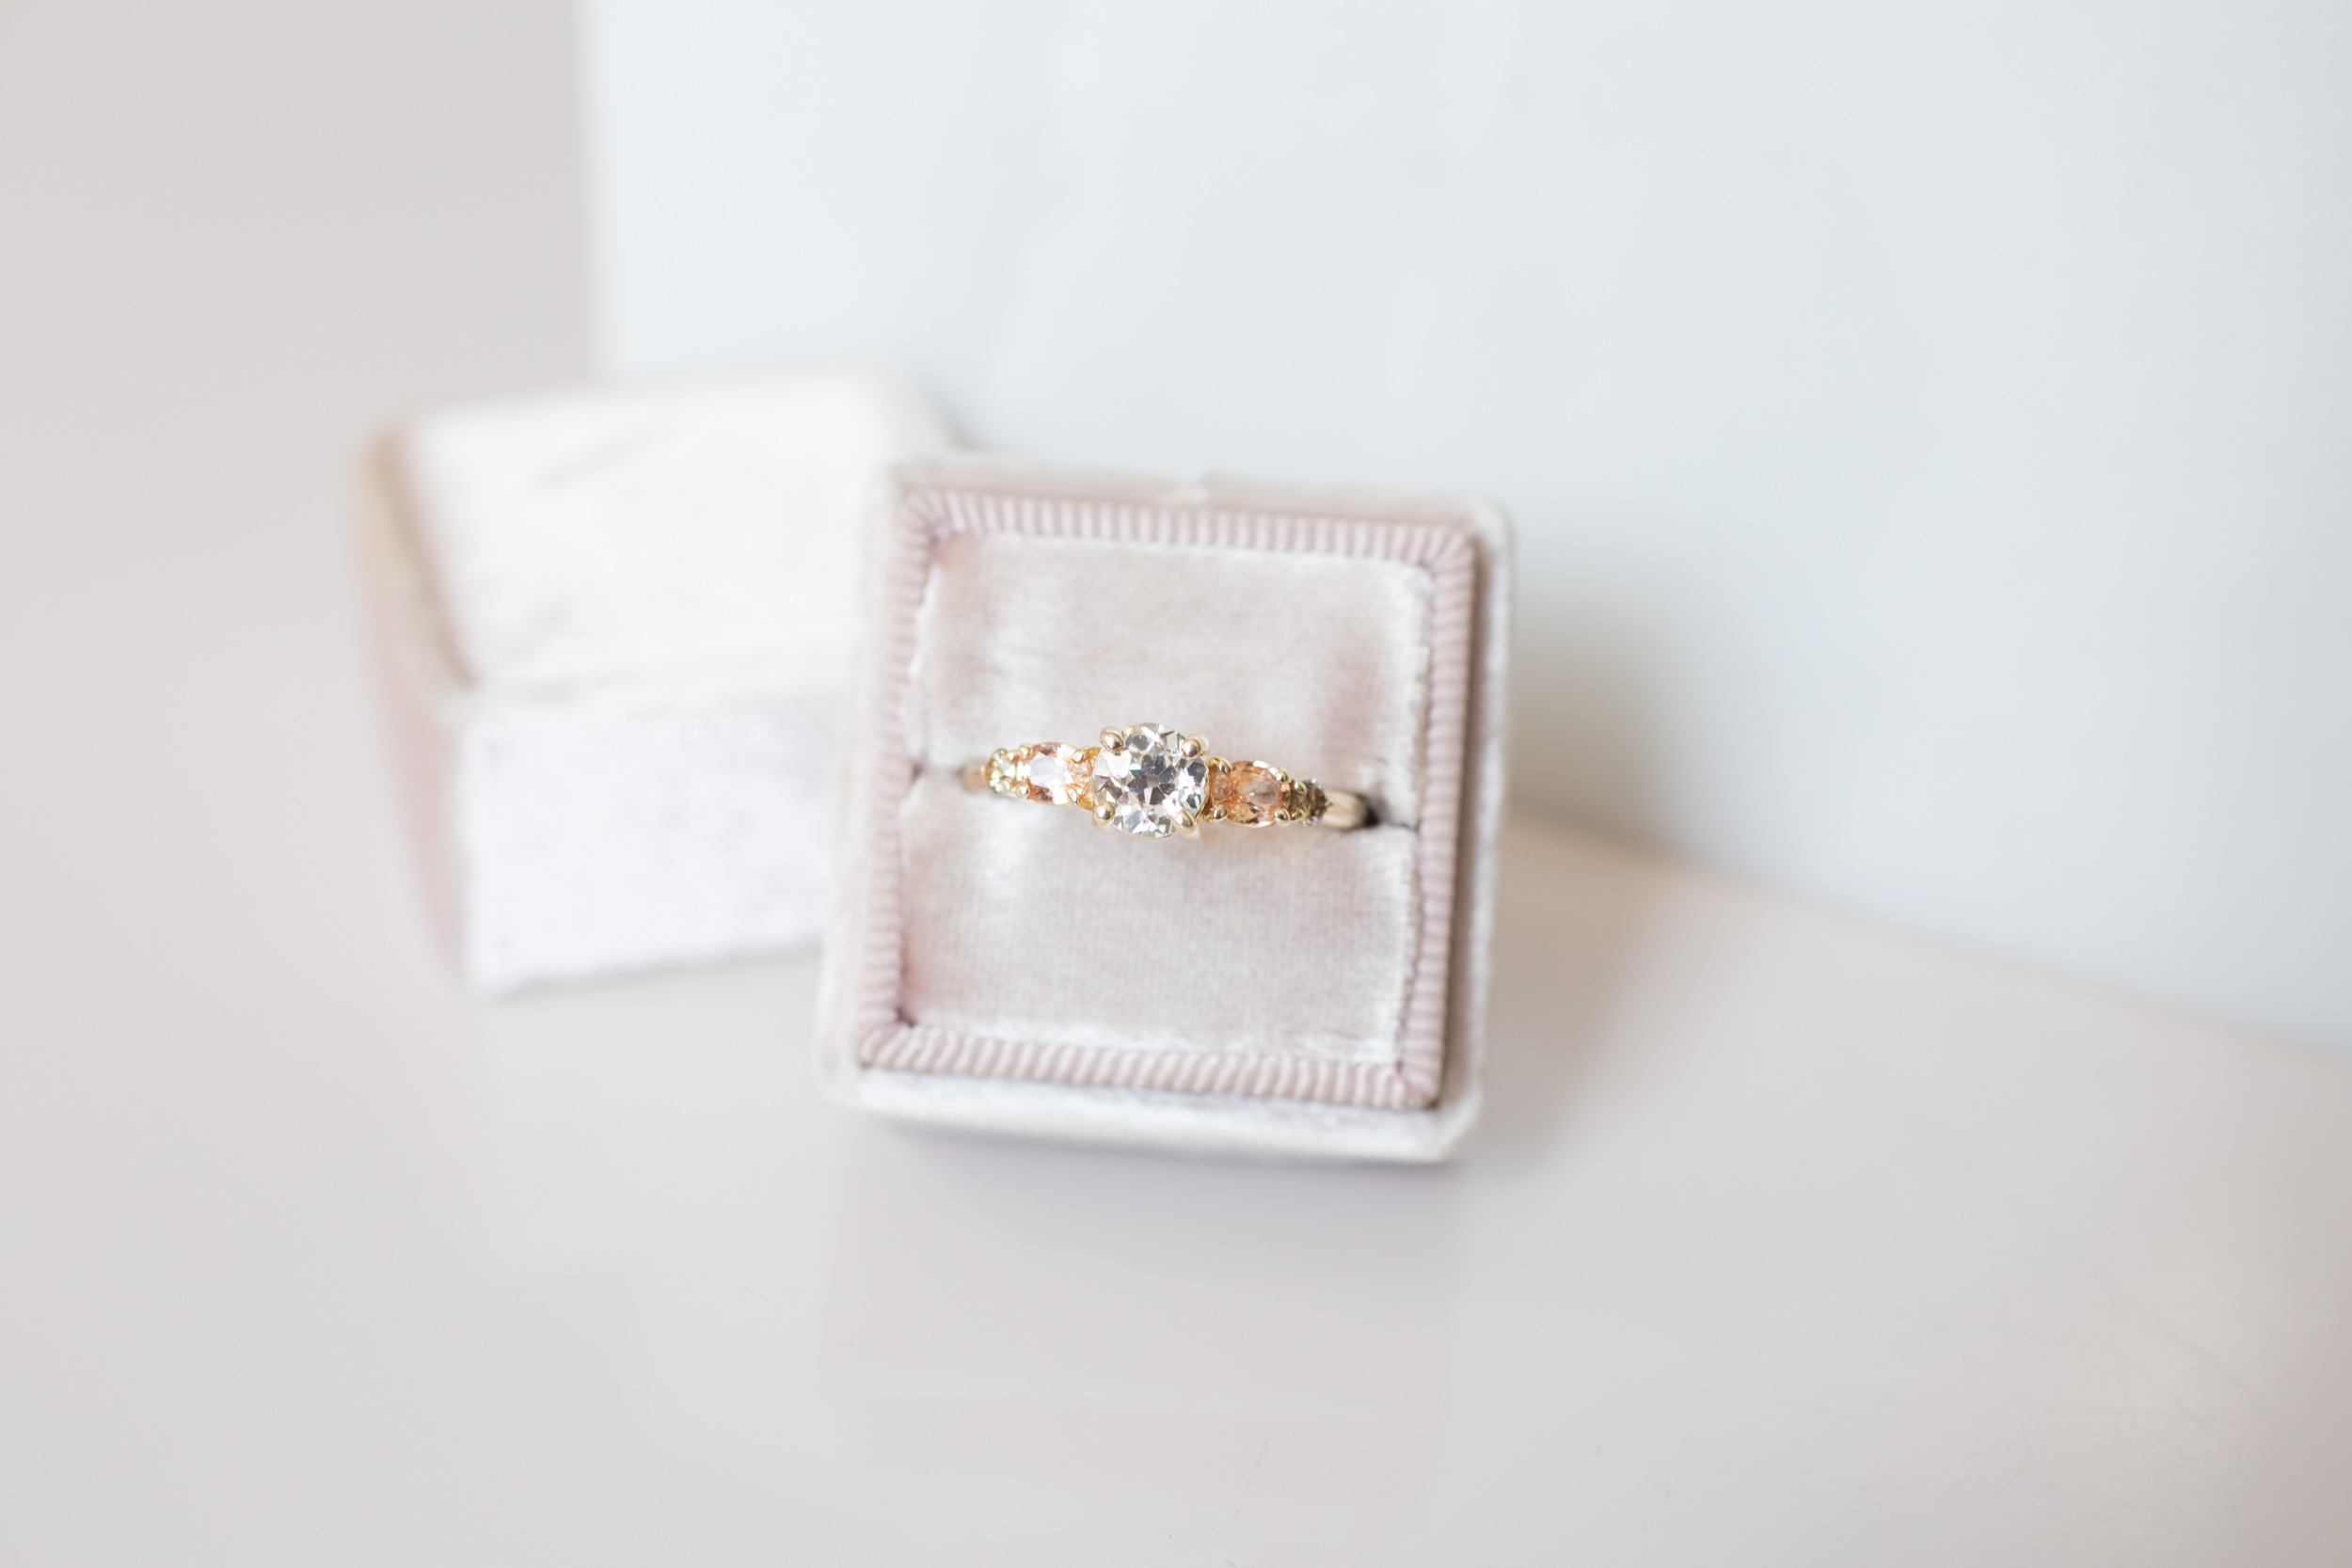 Glenn + Eliot EOC Diamond, Peach Sapphire, Champagne Diamond Cluster Ring-8.jpg